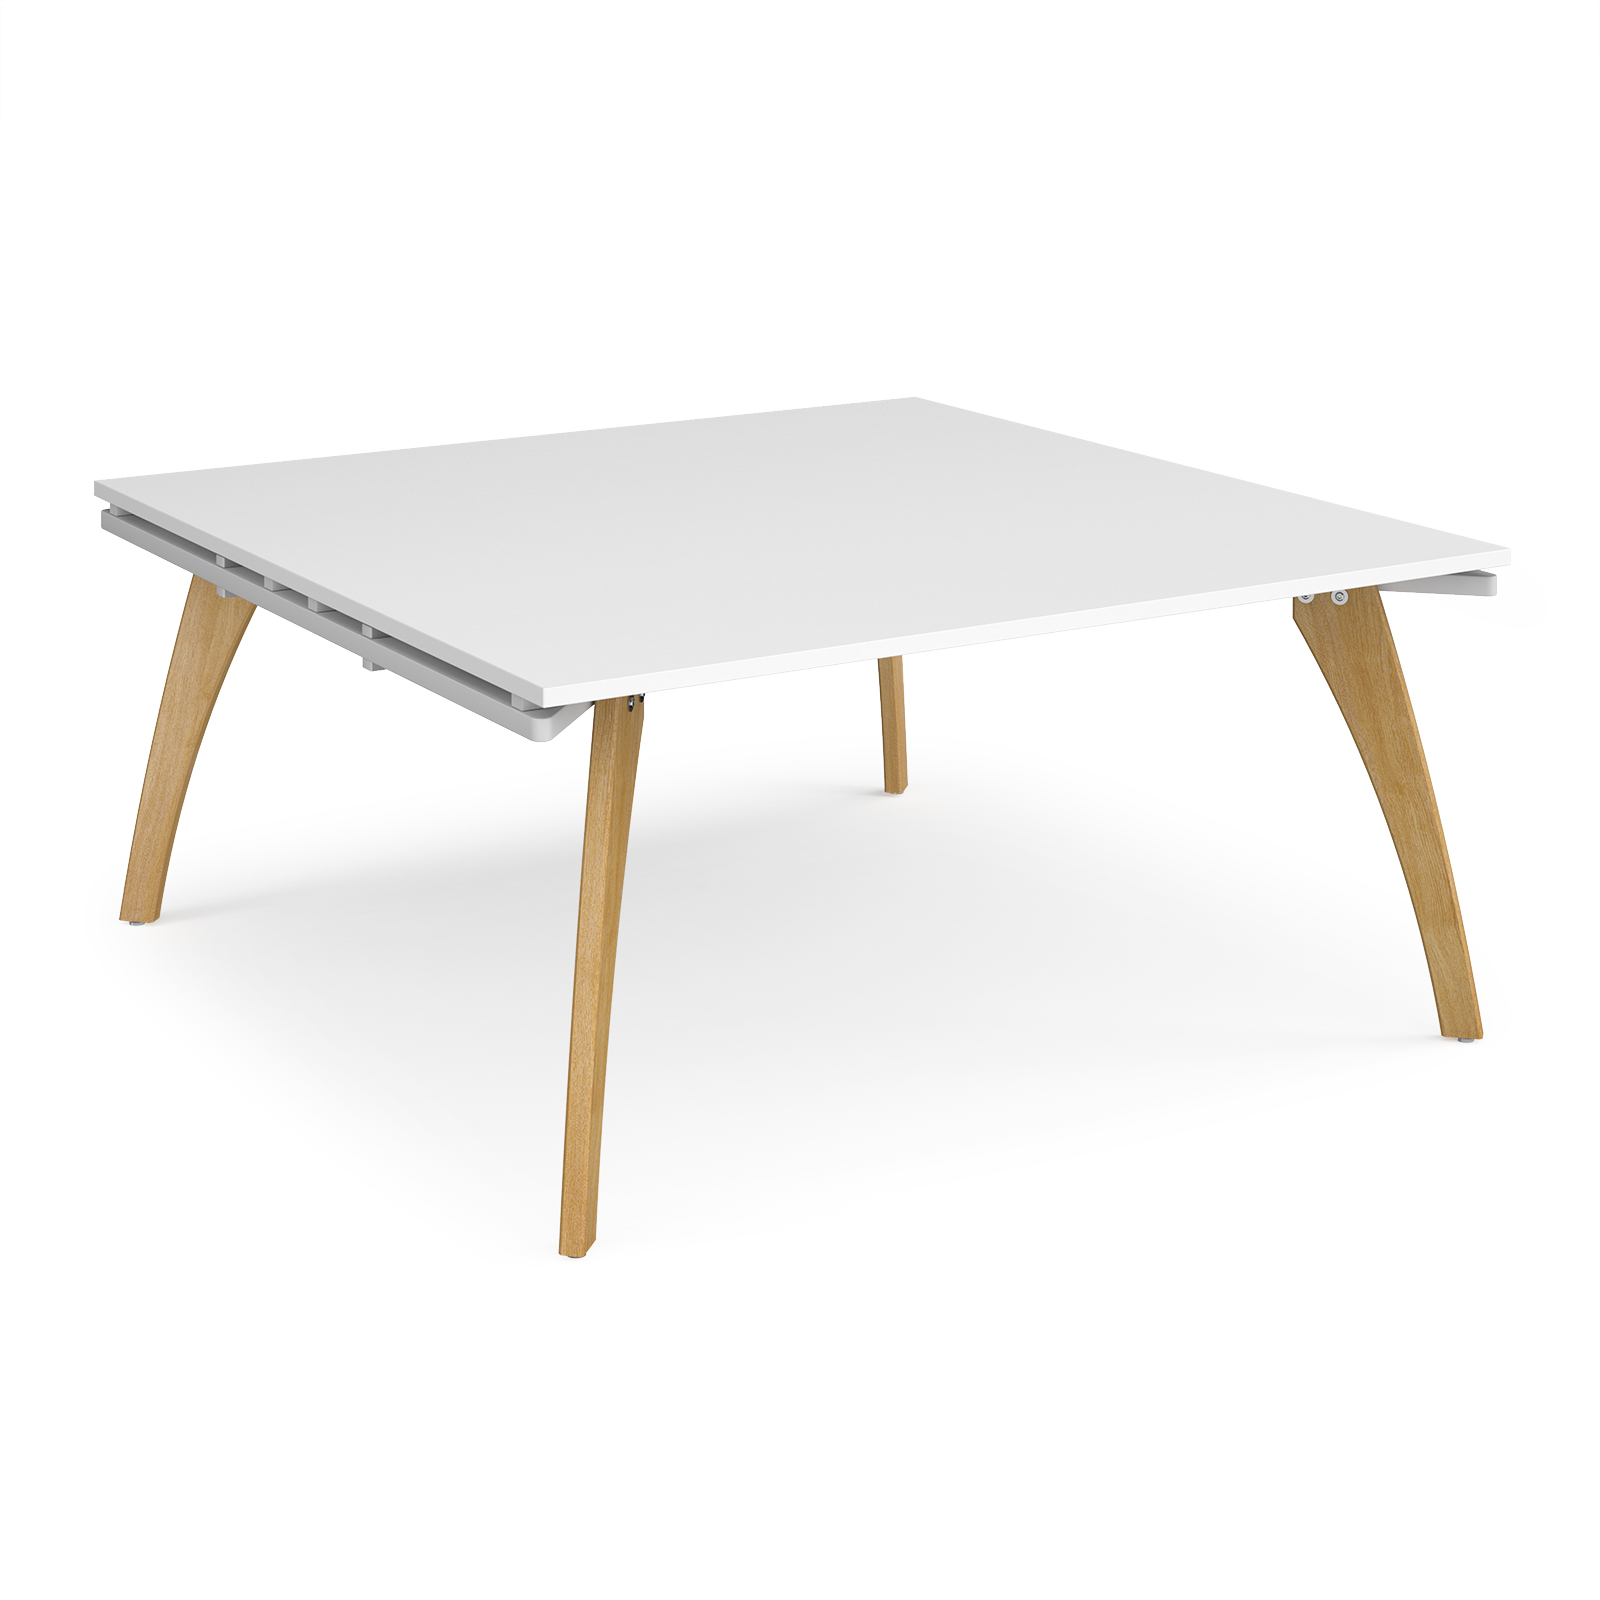 Fuze square boardroom table 1600mm x 1600mm - white frame, white top